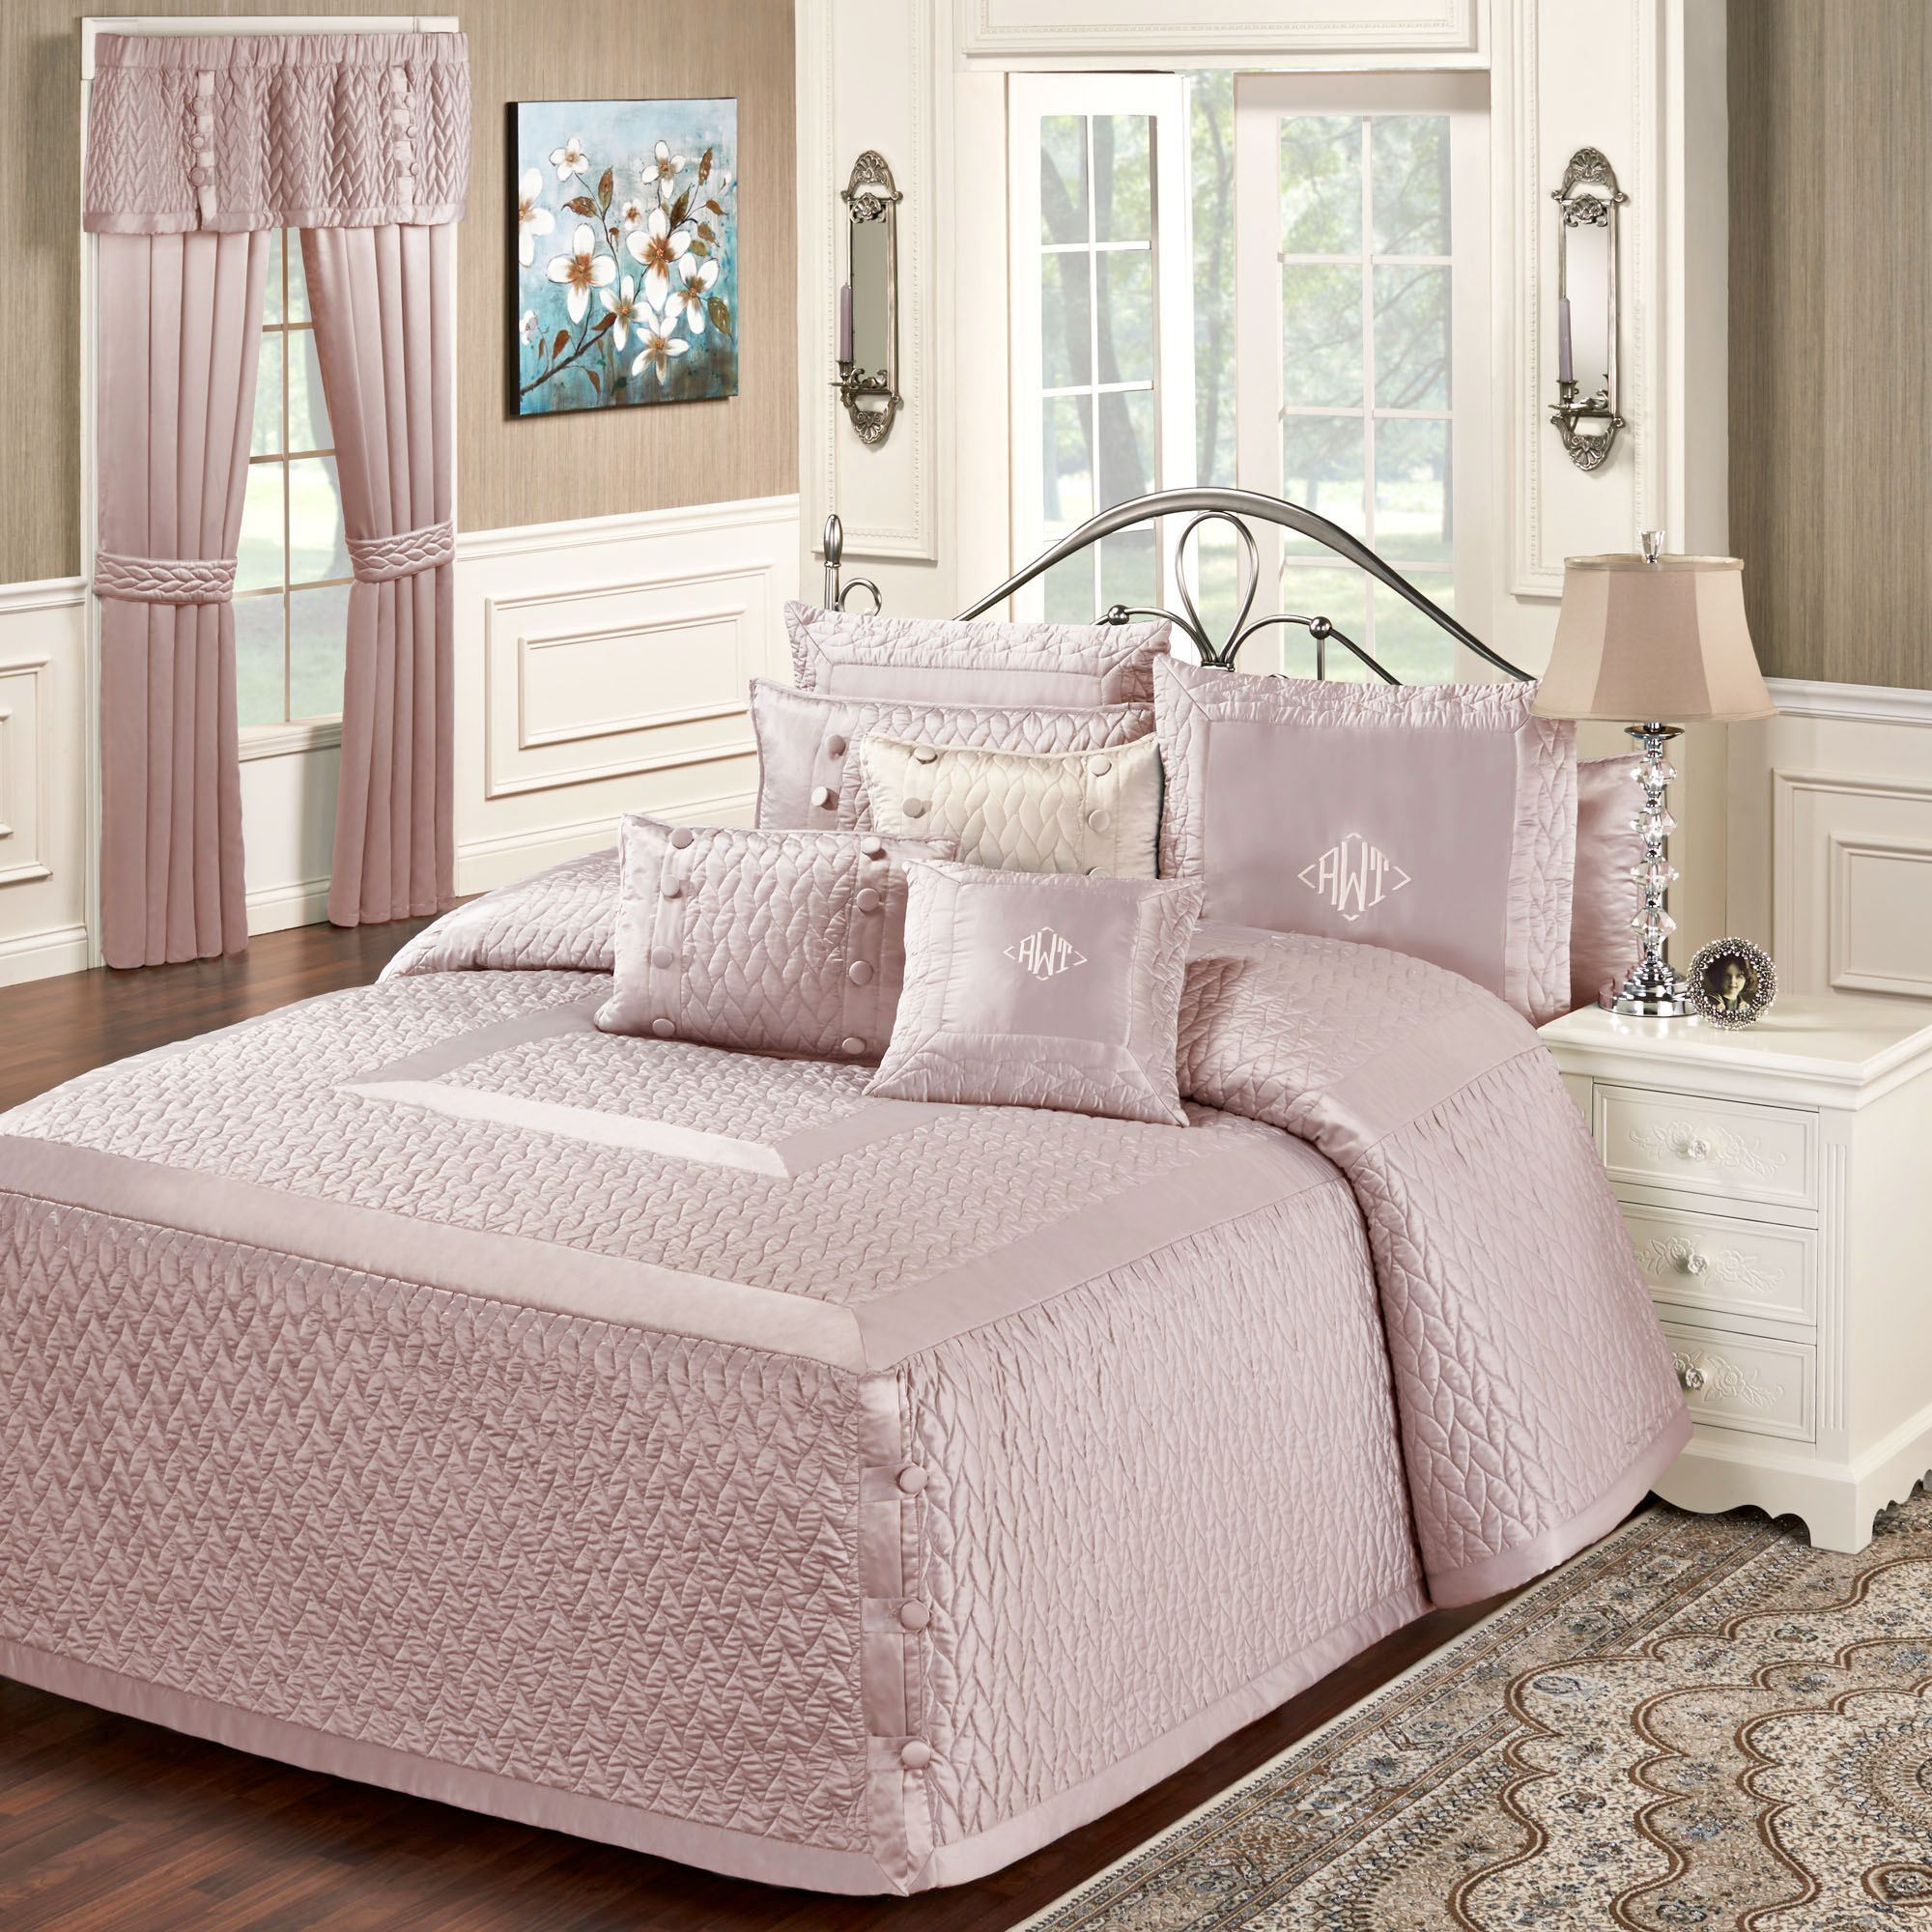 Silk Allure Dusty Mauve Oversized Quilted Bedspread Bedding